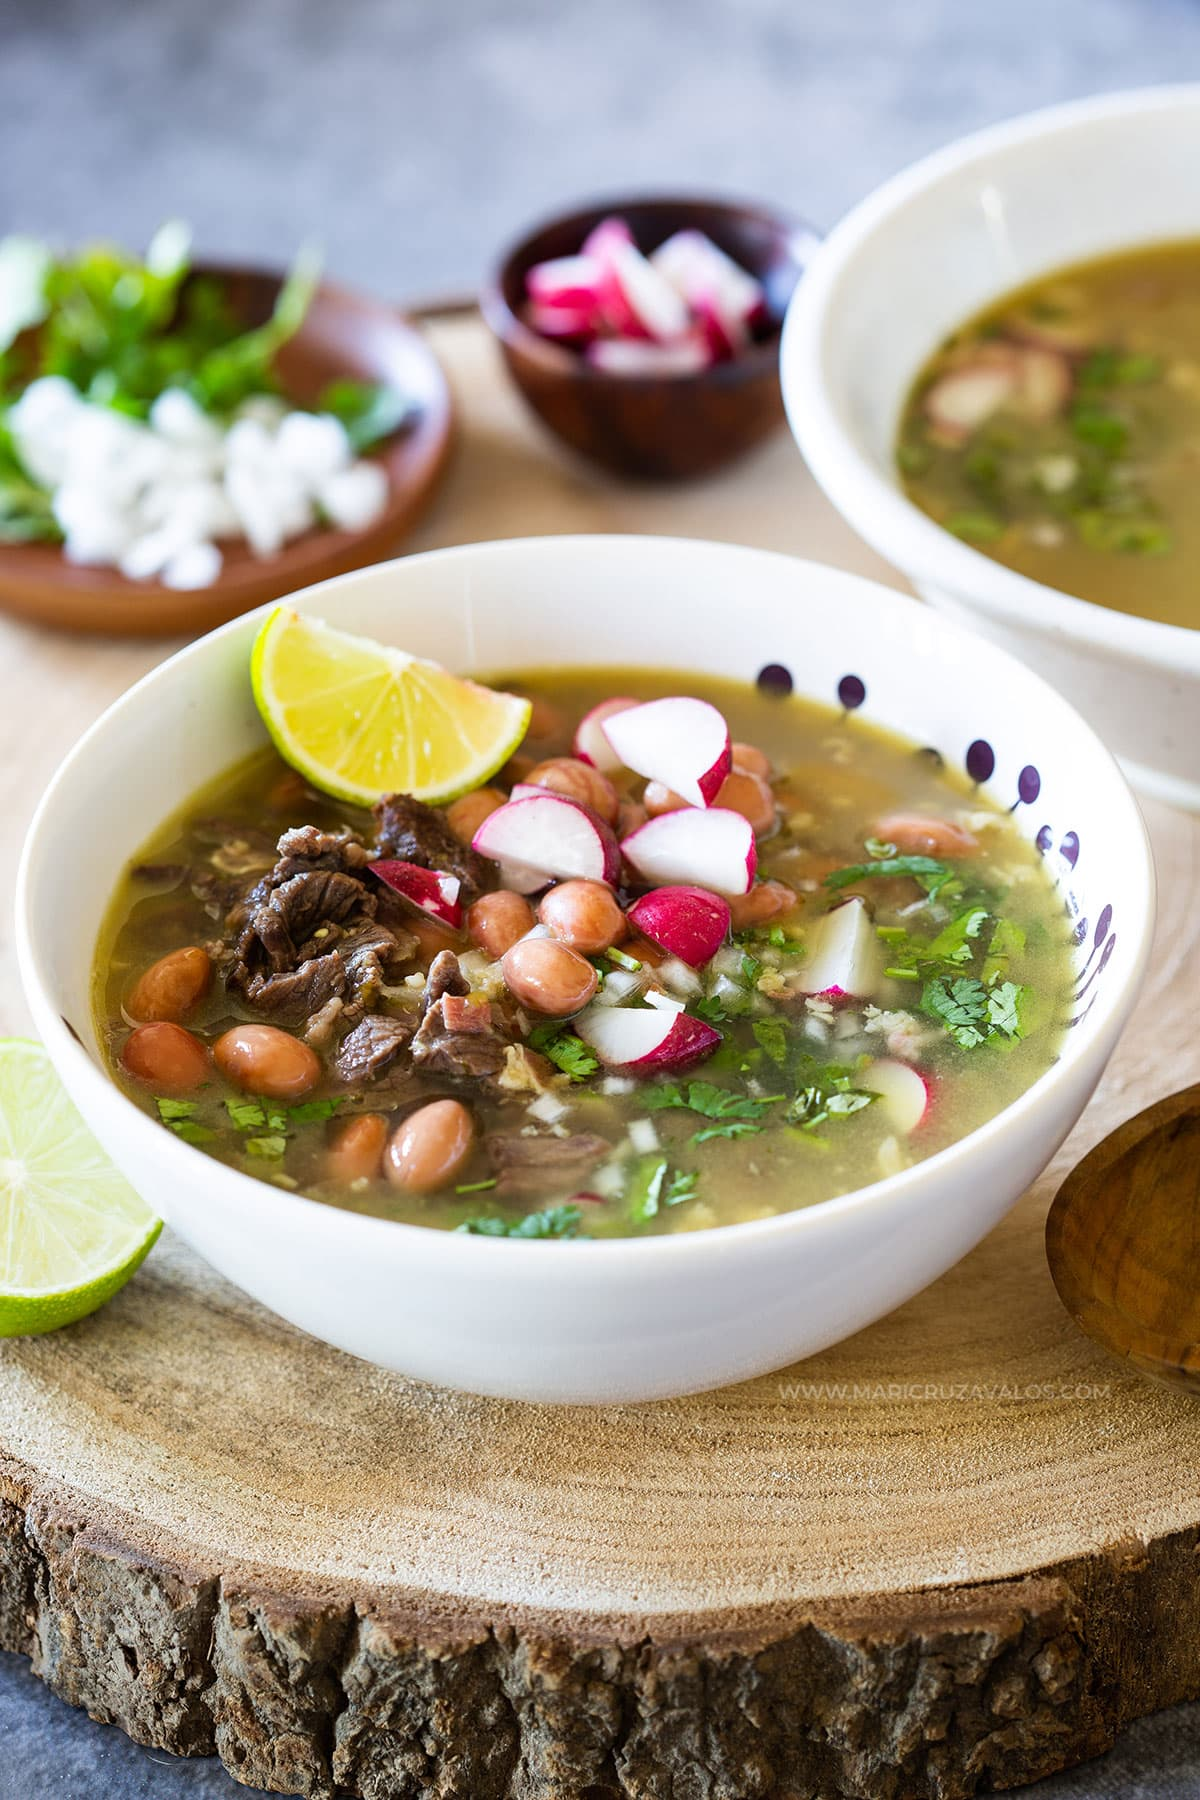 Mexican carne en su jugo served with various toppings.